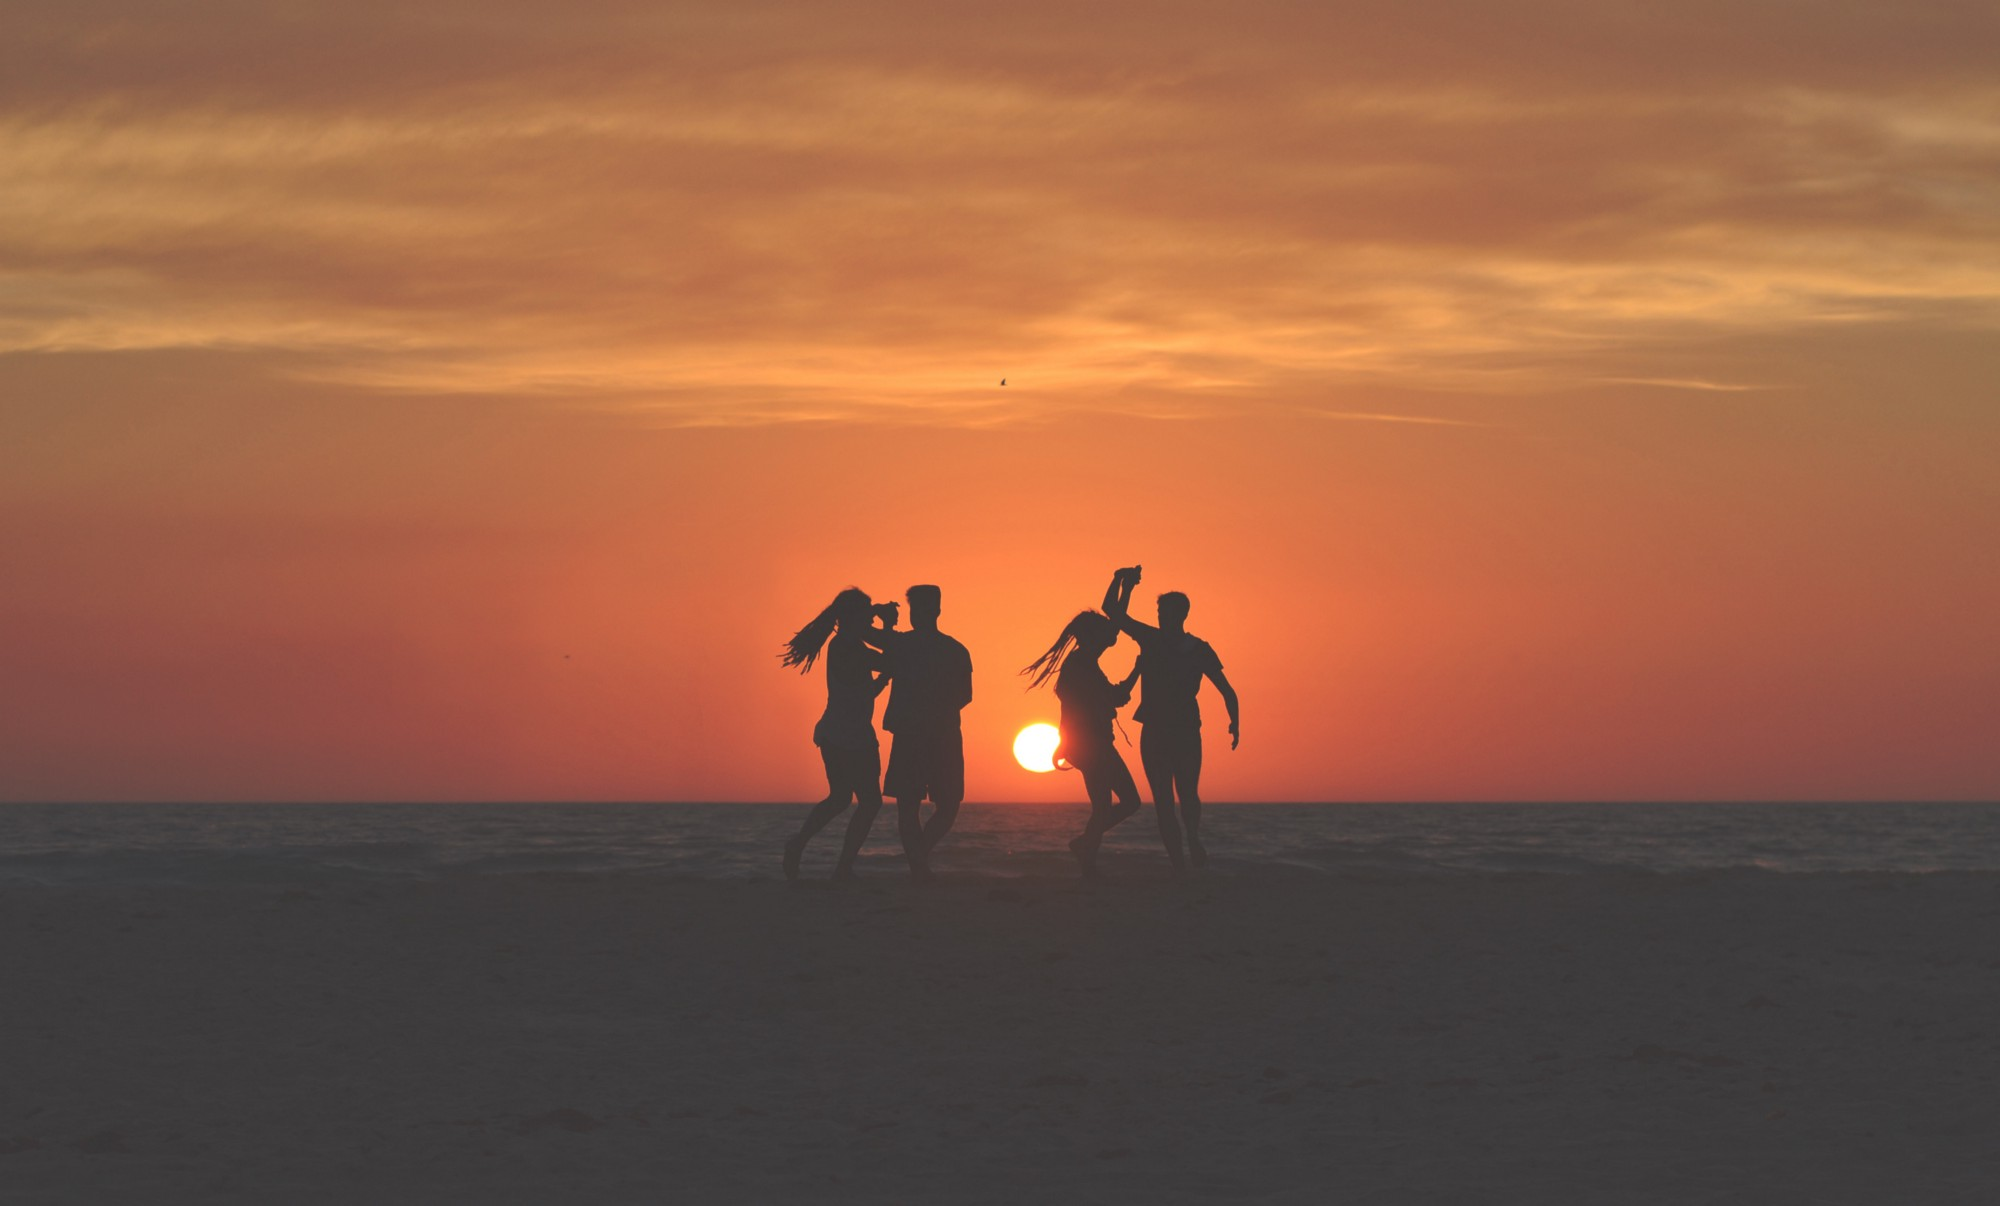 Two couples dancing on a beach